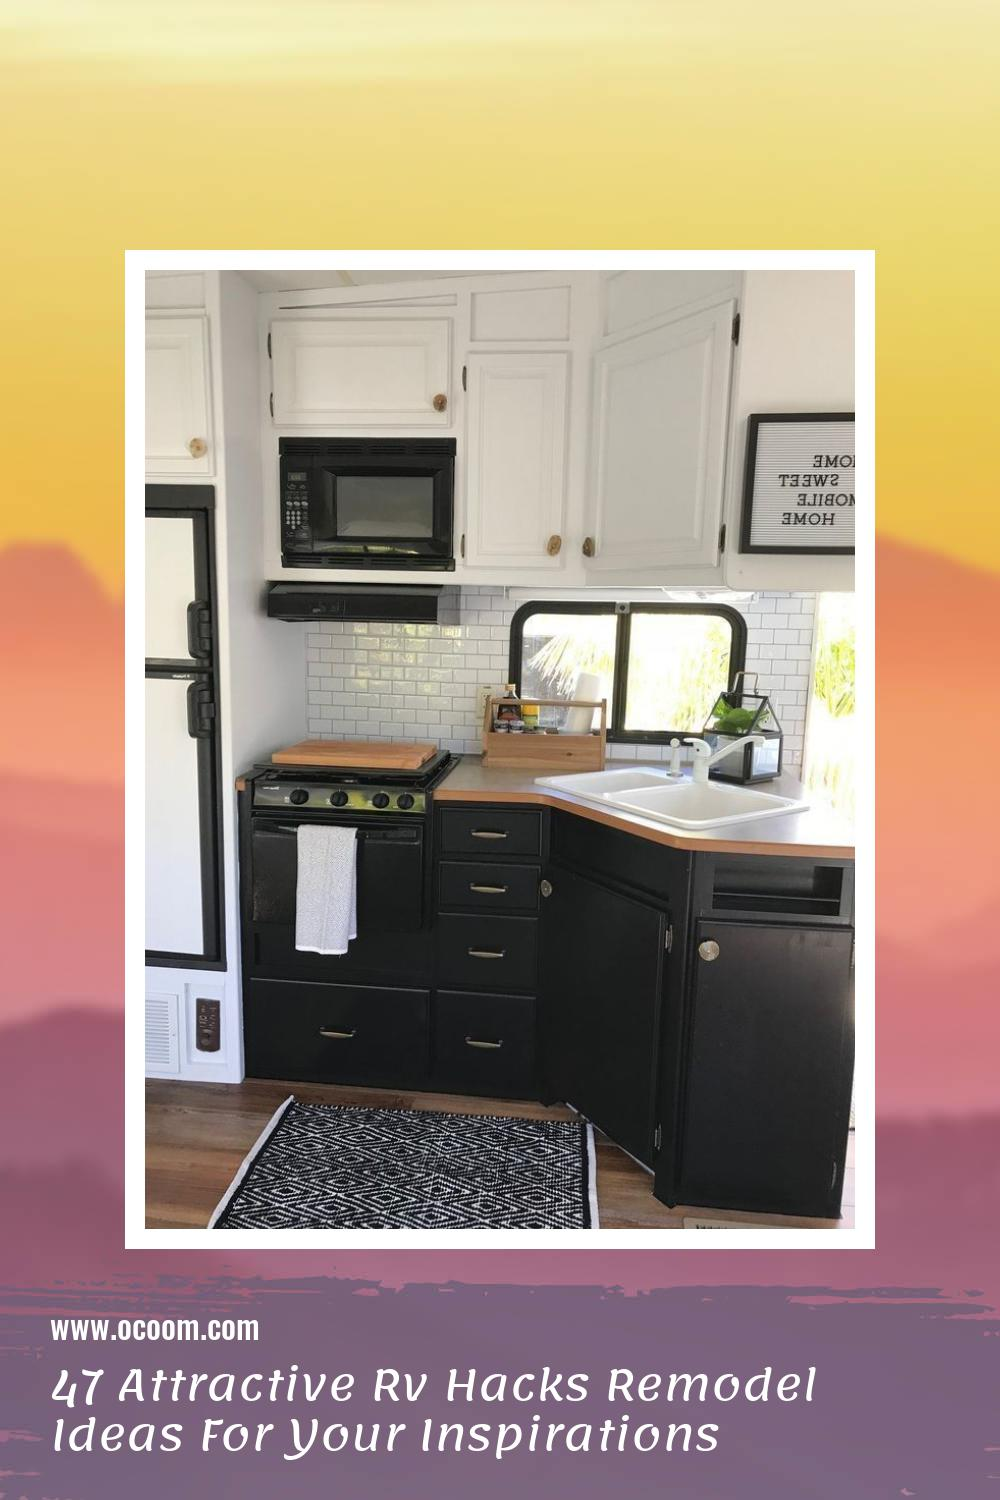 47 Attractive Rv Hacks Remodel Ideas For Your Inspirations 44